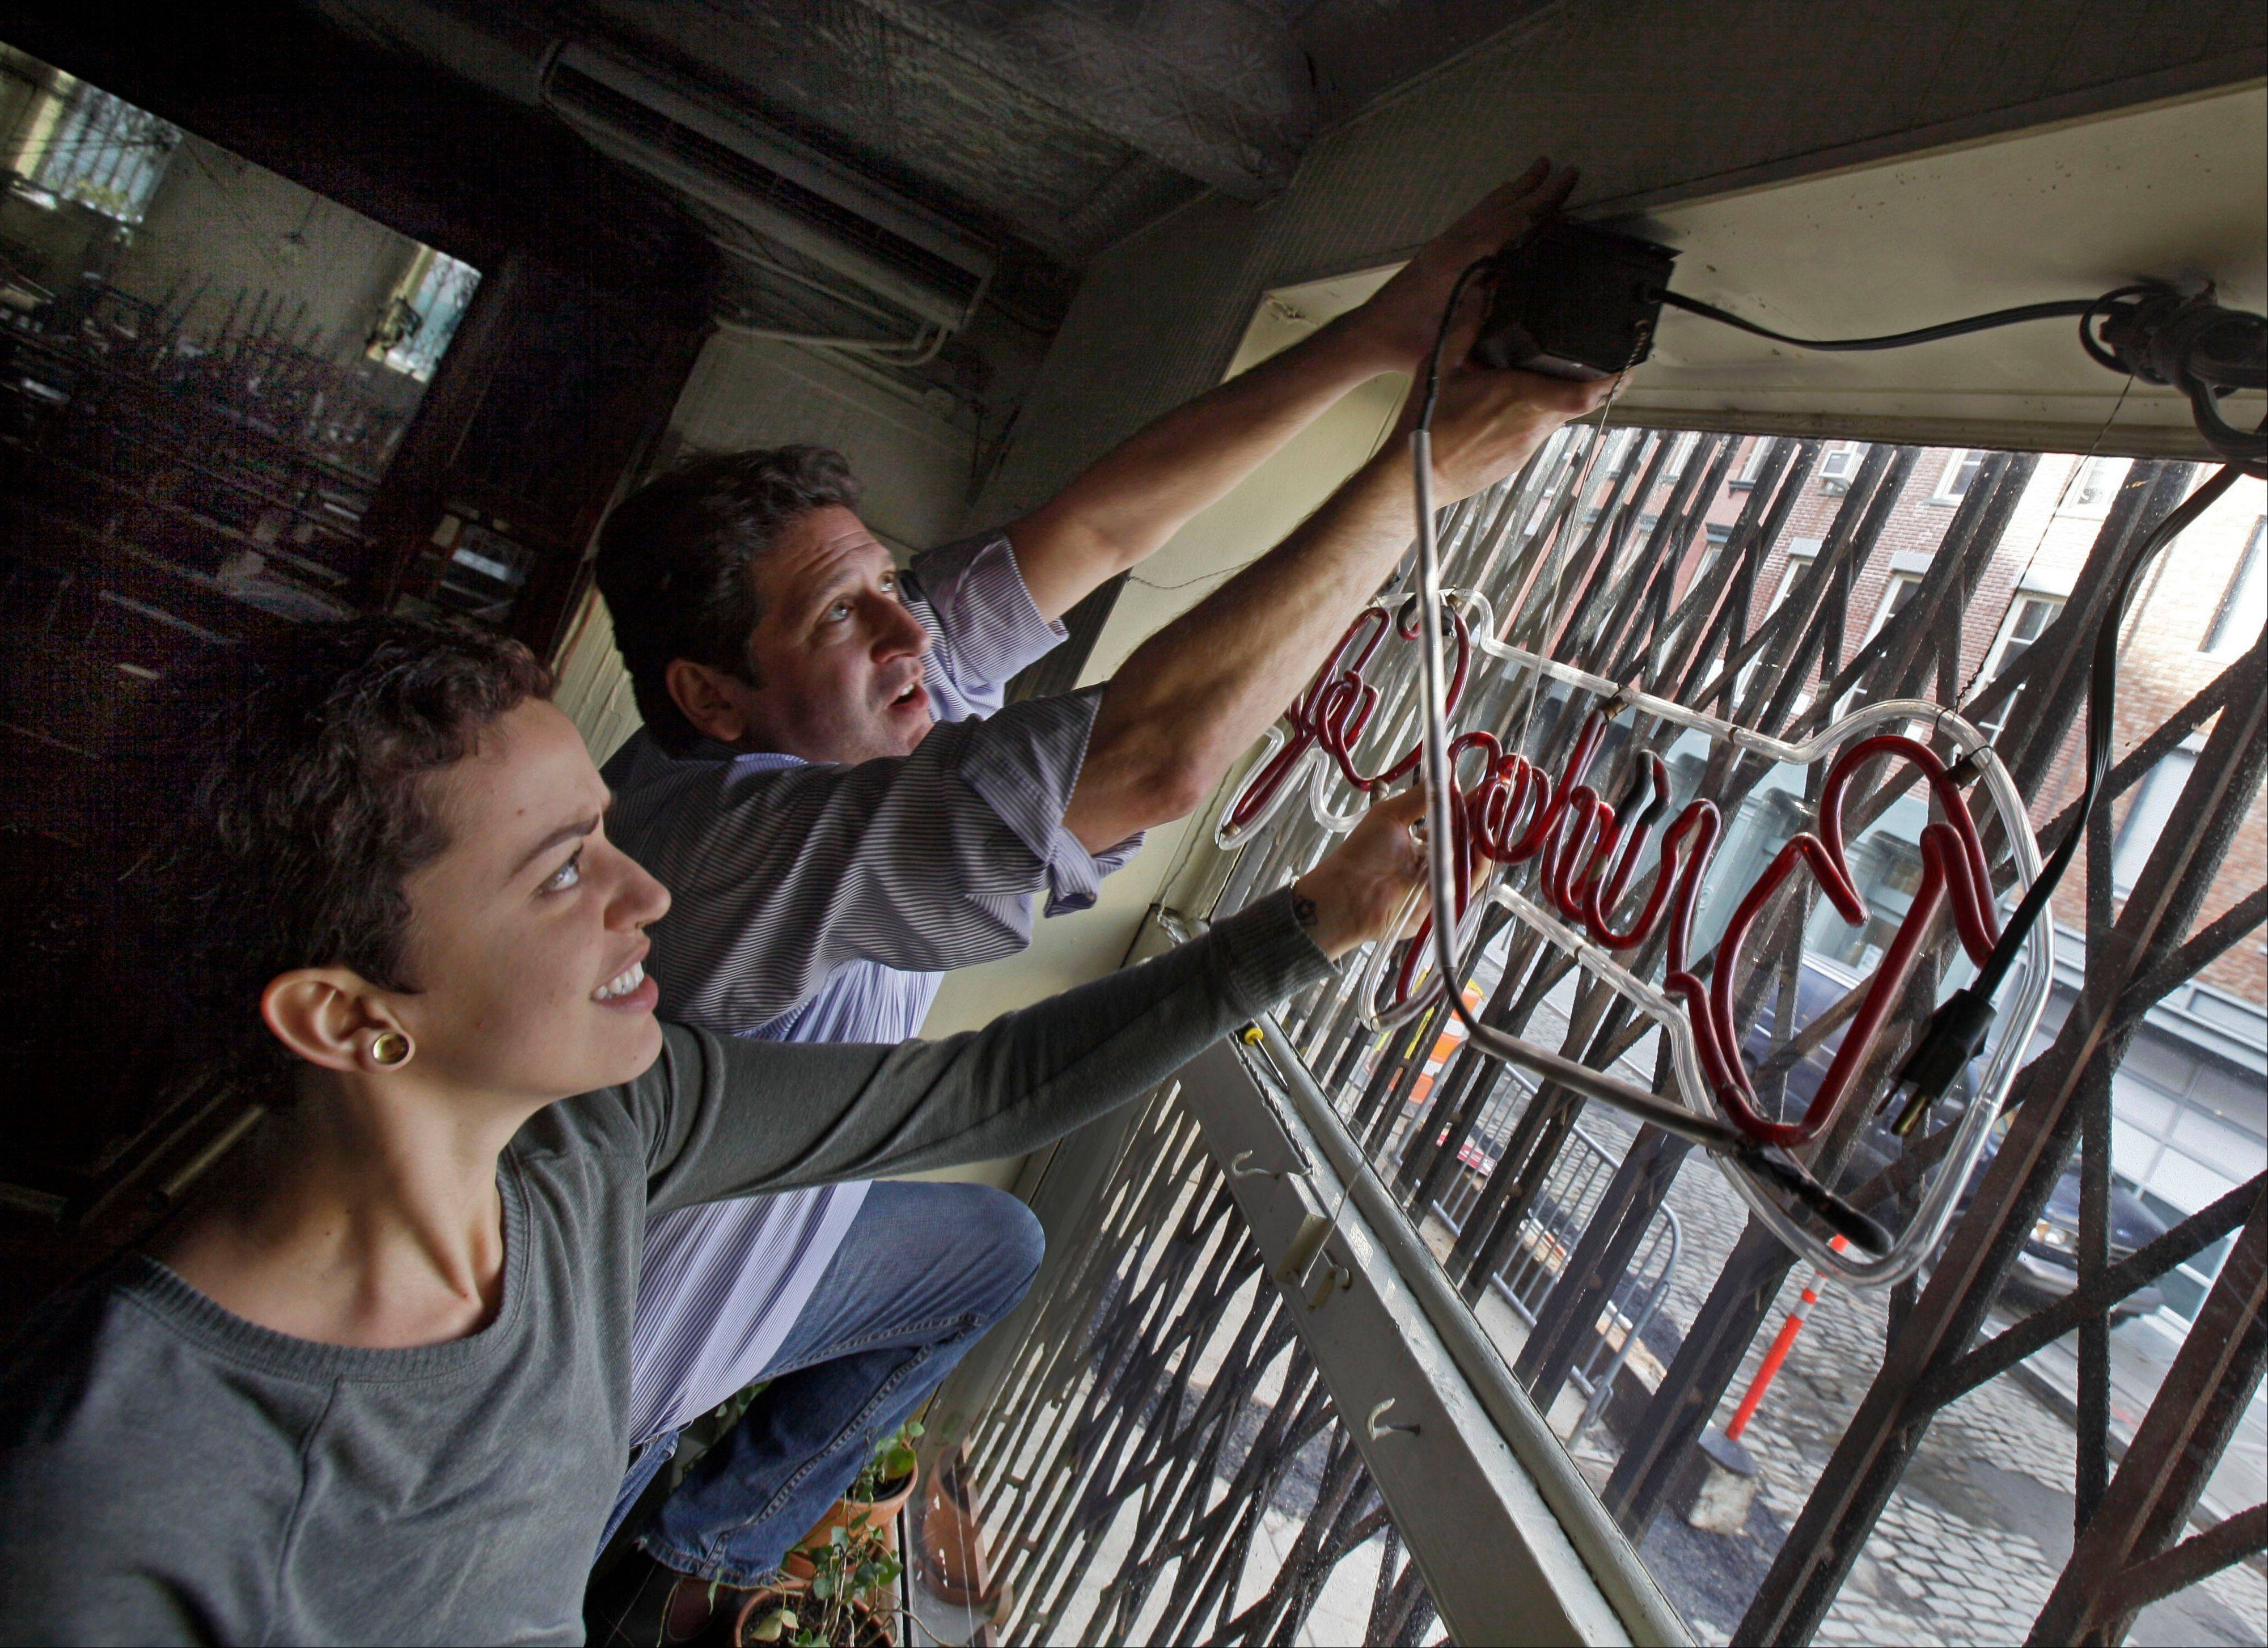 Bridge Cafe General Manager Ludmila Silva and proprietor Adam Weprin take down the restaurant's neon sign Tuesday at the restaurant in New York's South Street Seaport. Like many small business owners in the Northeast whose stores, restaurants, factories and offices were devastated or destroyed by the Oct. 29 storm, Weprin is hoping that federal, state and local officials will quickly come up with grants to help him rebuild and survive.